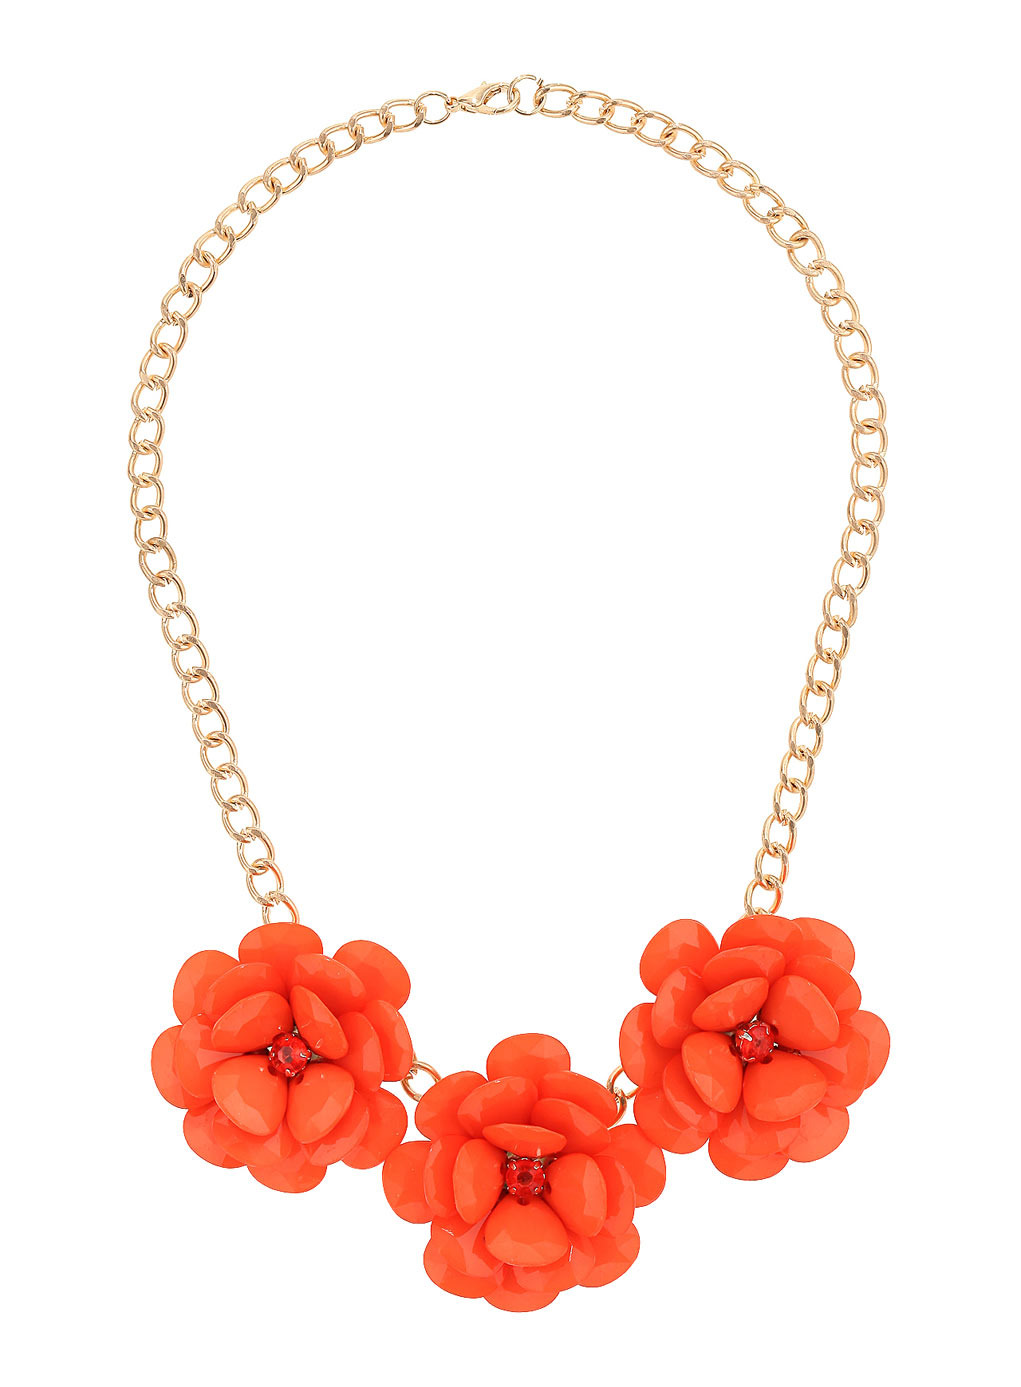 Orange Flower Statement Necklace - predominant colour: bright orange; secondary colour: gold; occasions: evening, occasion, creative work; length: short; size: standard; material: fabric/cotton; finish: plain; embellishment: jewels/stone; style: bib/statement; season: s/s 2014